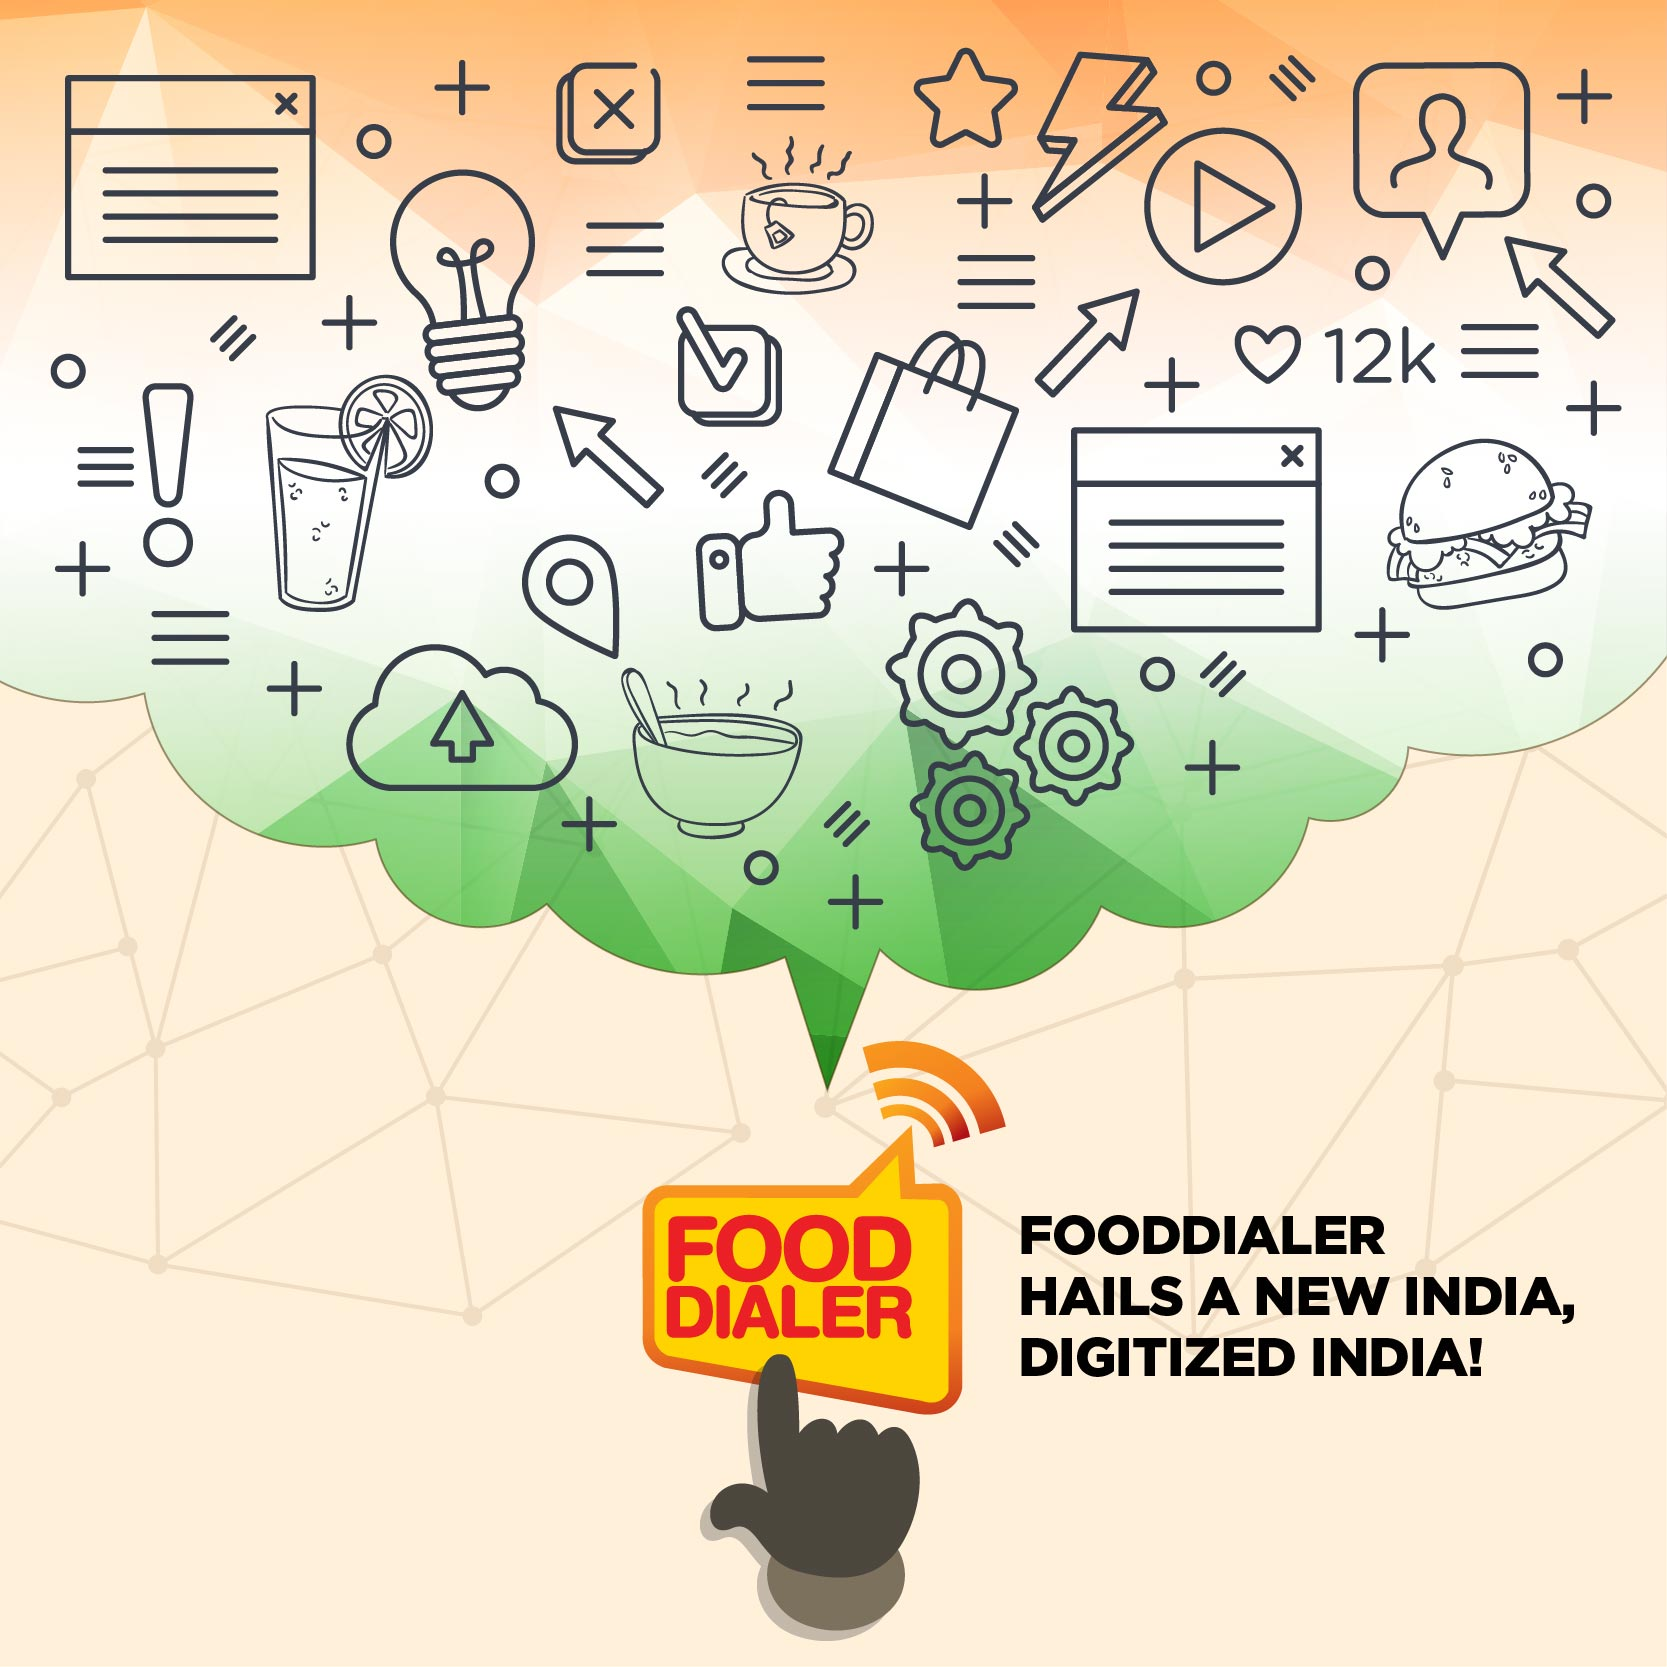 Fooddialer hails a digital India!